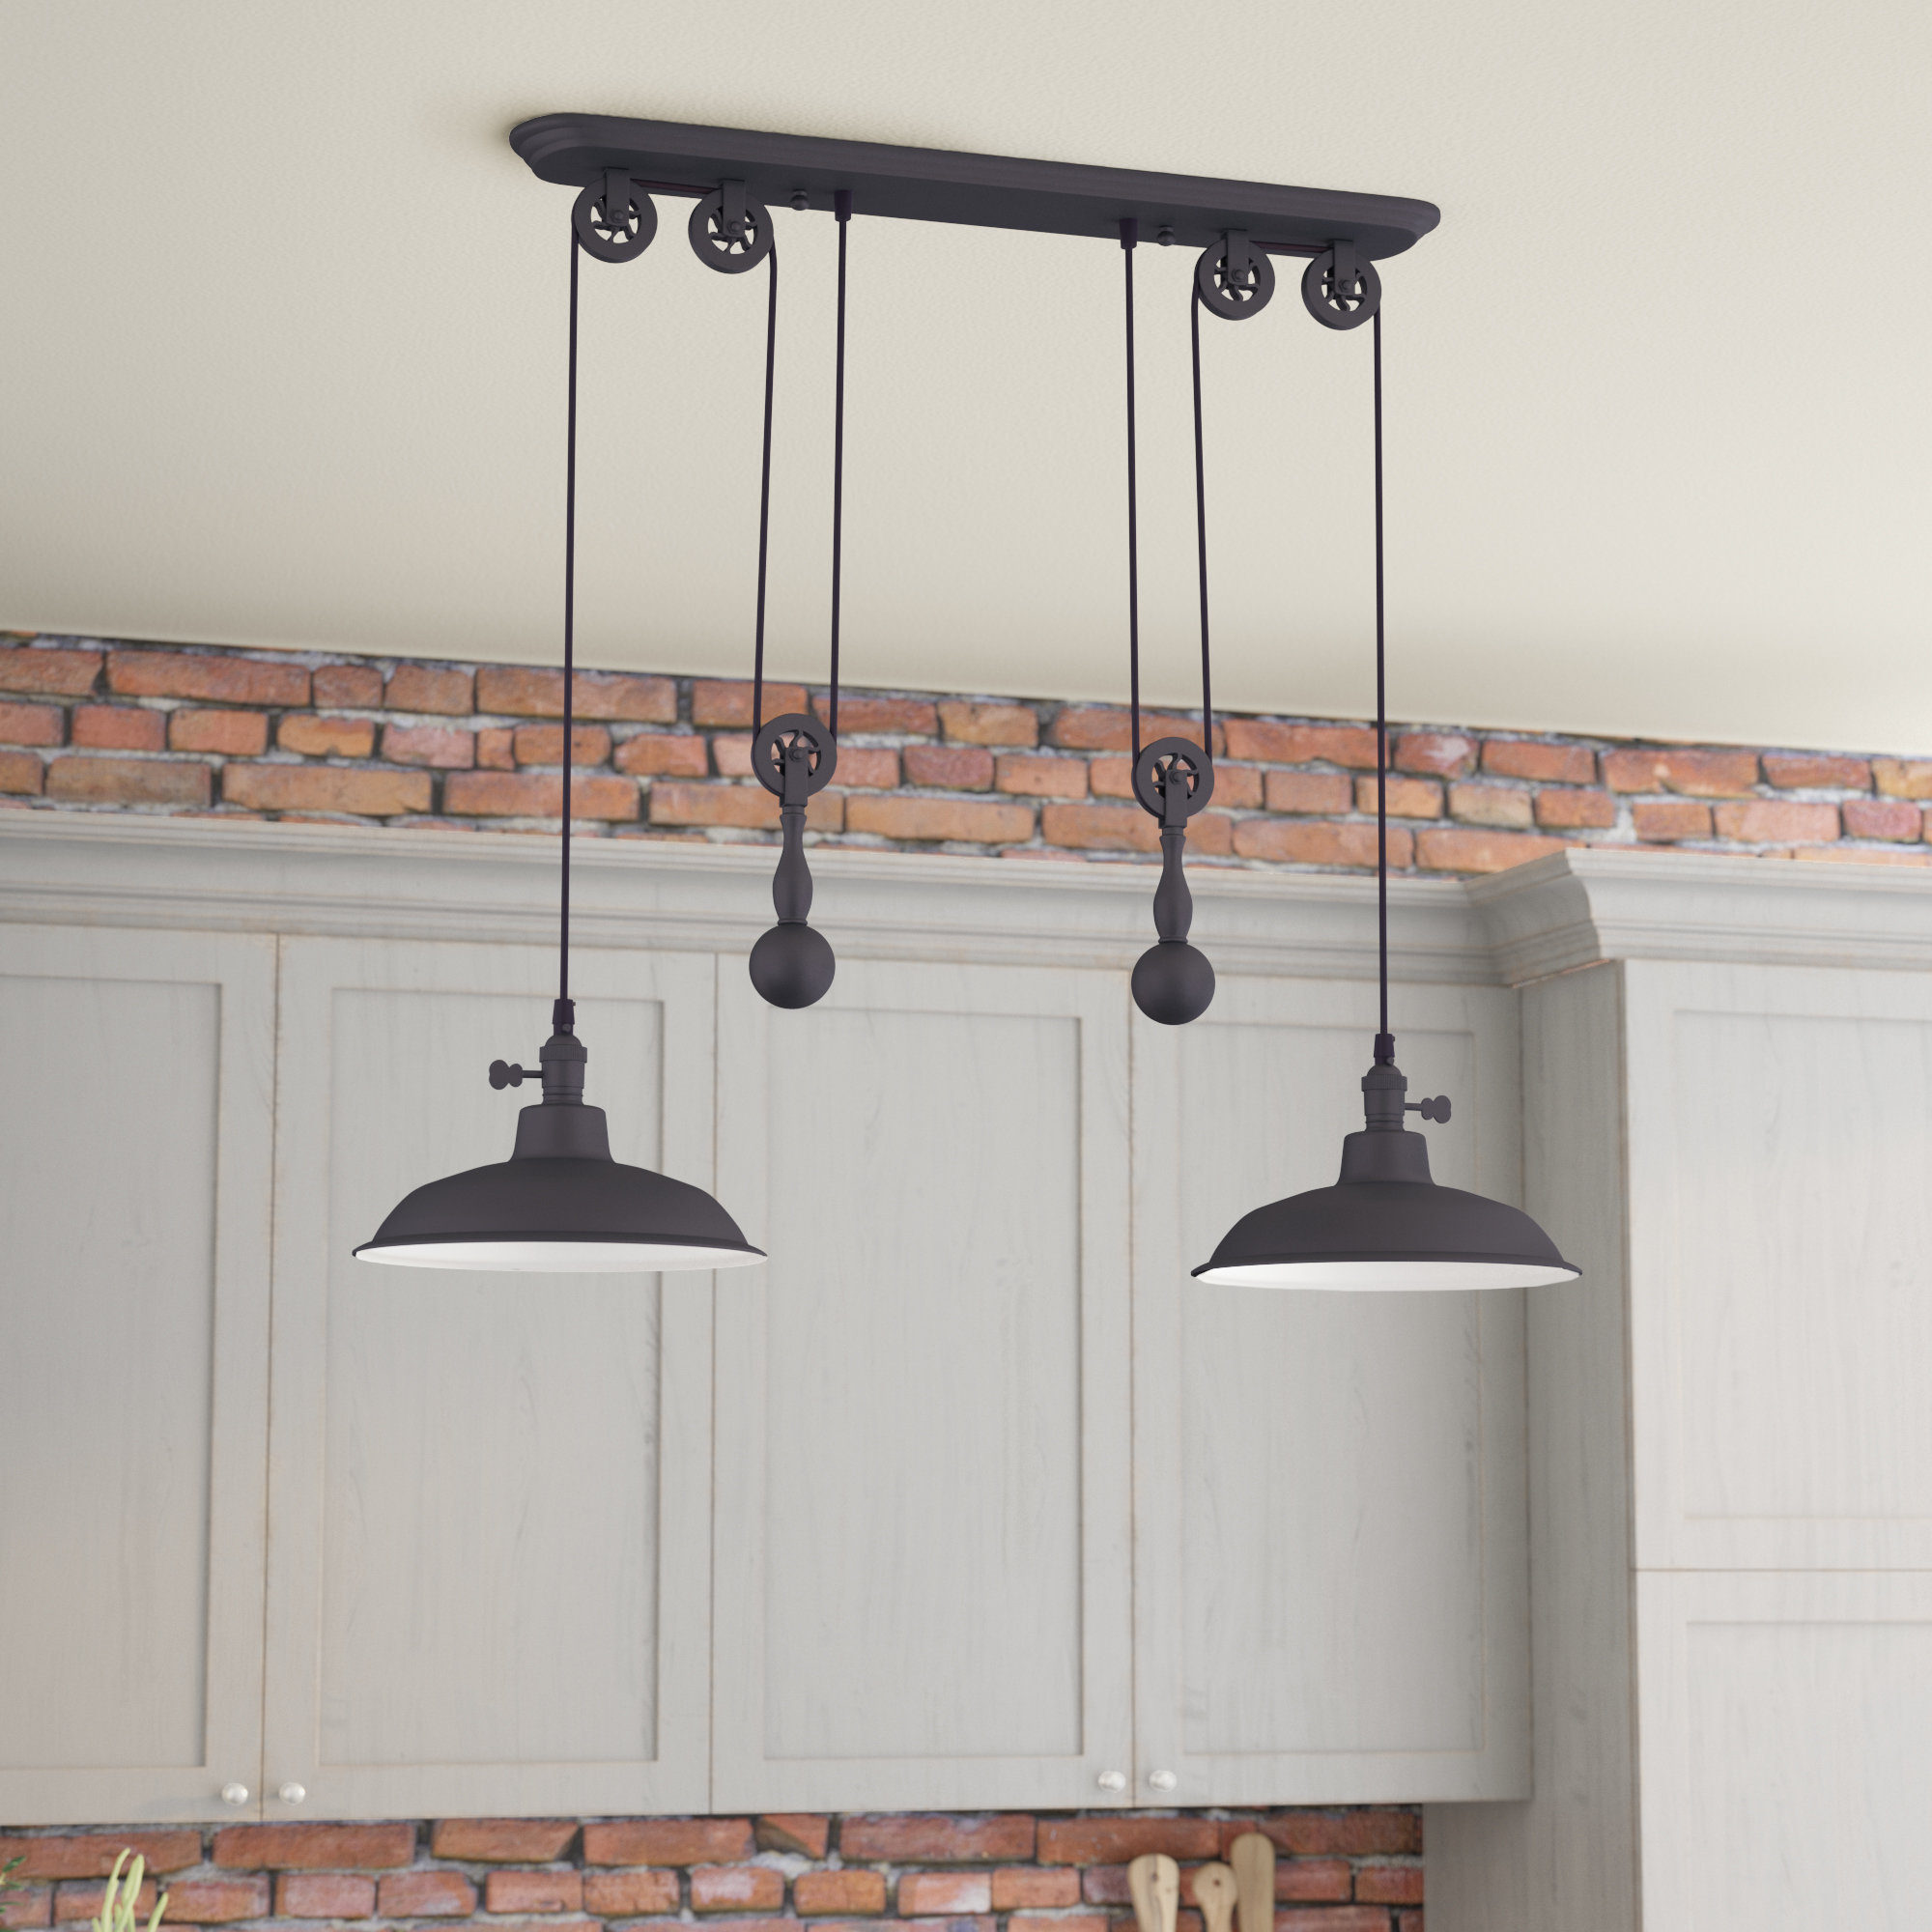 Euclid 2 Light Kitchen Island Linear Pendants Throughout Current Over Island Lighting You'll Love In 2019 (Gallery 16 of 20)